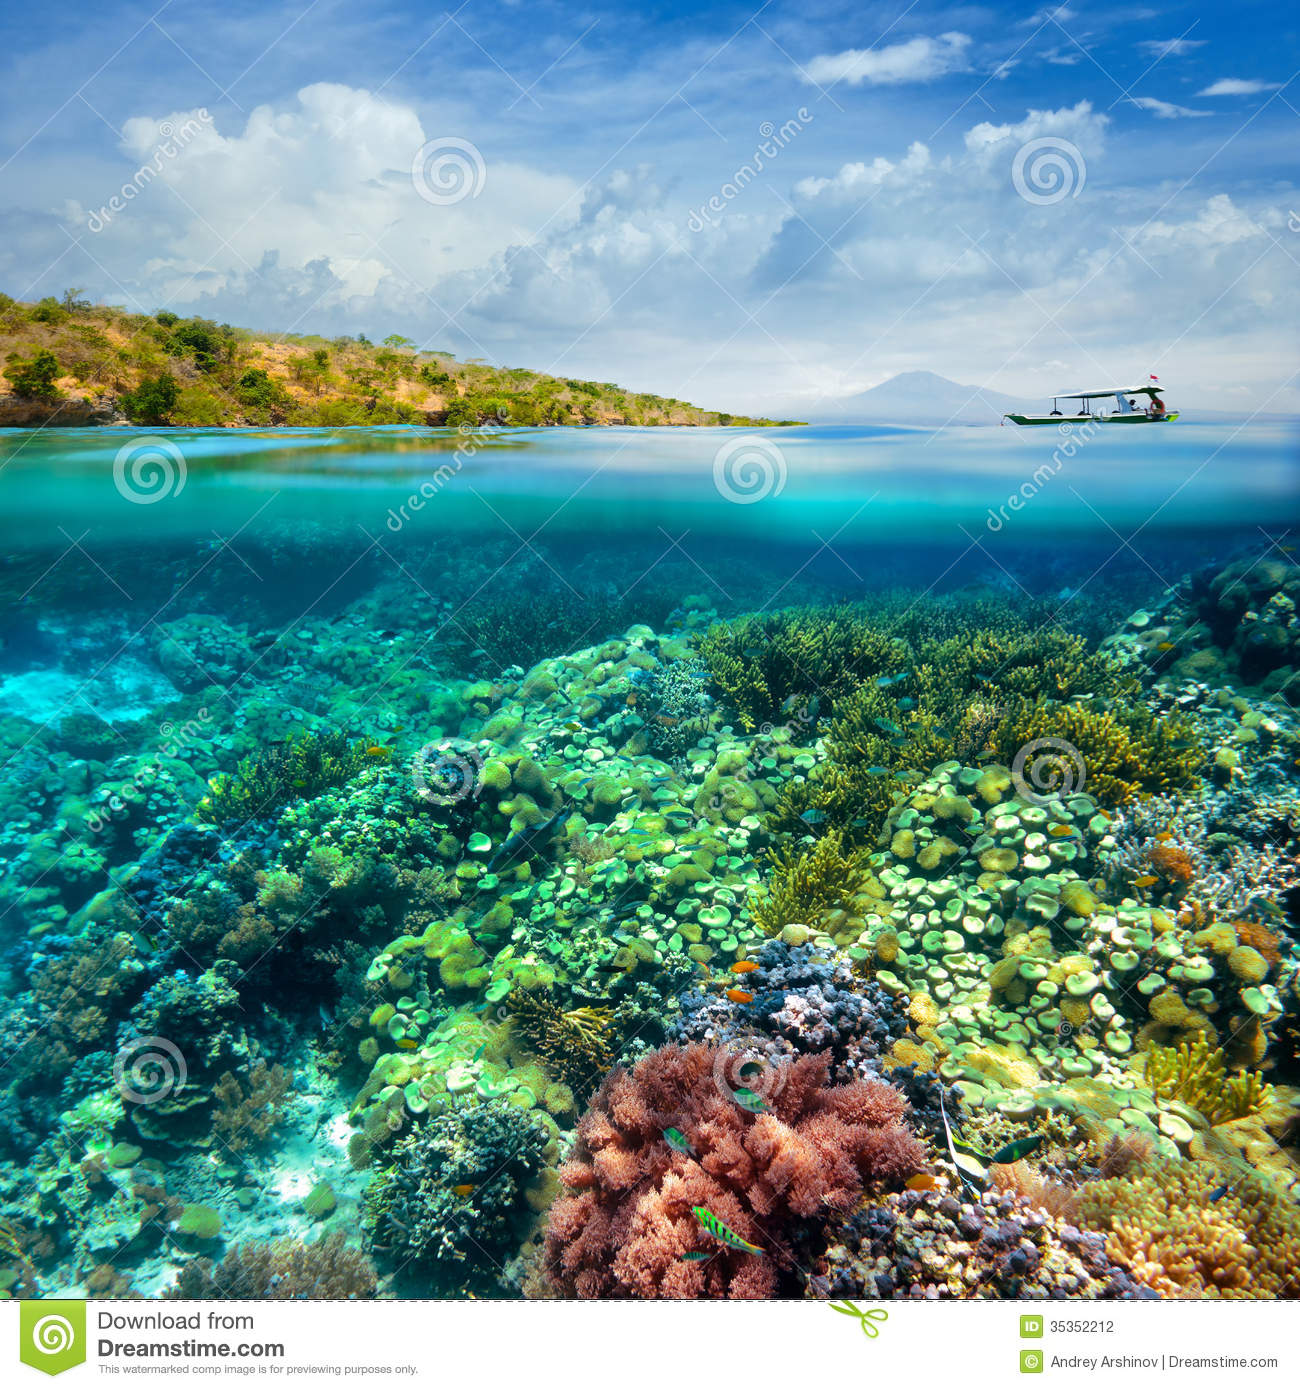 Beautiful Coral Reef On Background Of Cloudy Sky And Volcano. Stock ...